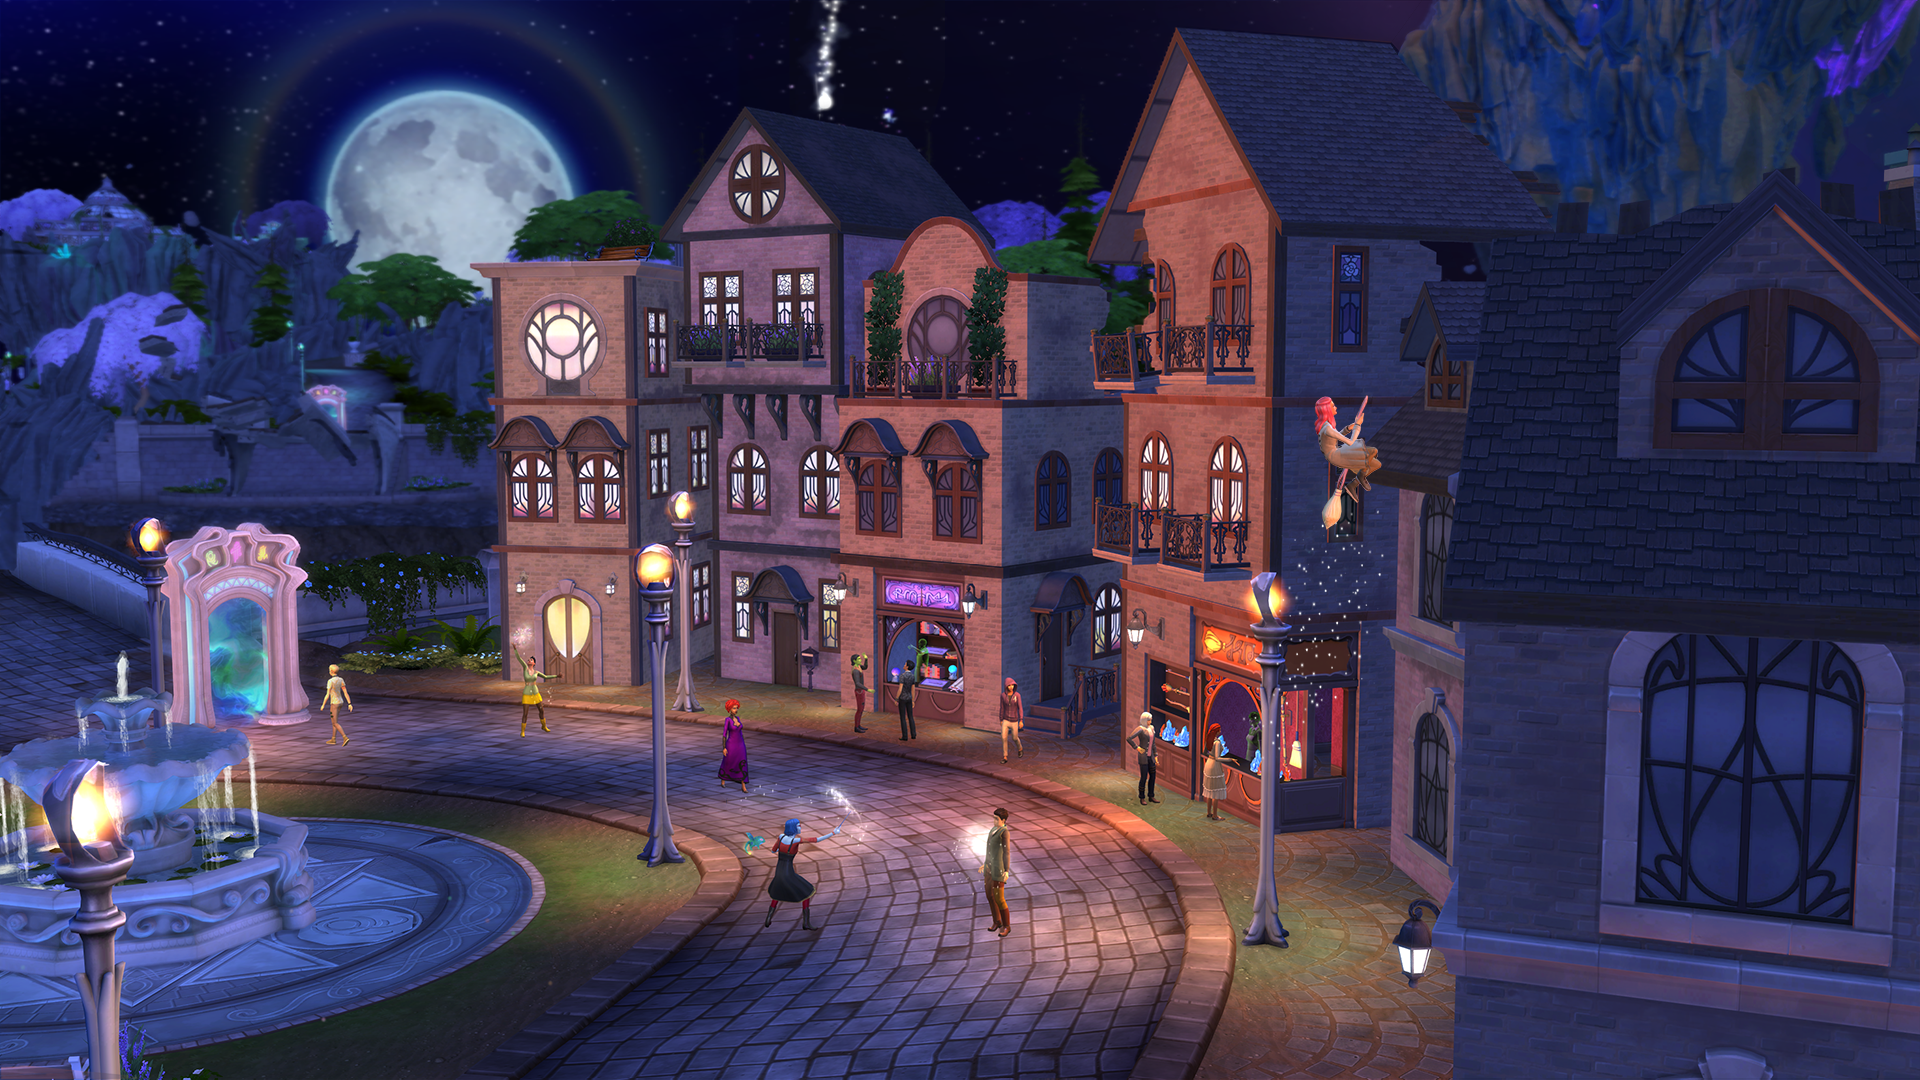 https://data2.origin.com/asset/content/dam/originx/web/app/games/the-sims/the-sims-4/game-packs/gp8_realm_of_magic/ts4_gp08_screens_03_003_1080.png/ce5e89eb-677f-4102-8a14-0f0ad1a19846/original.png